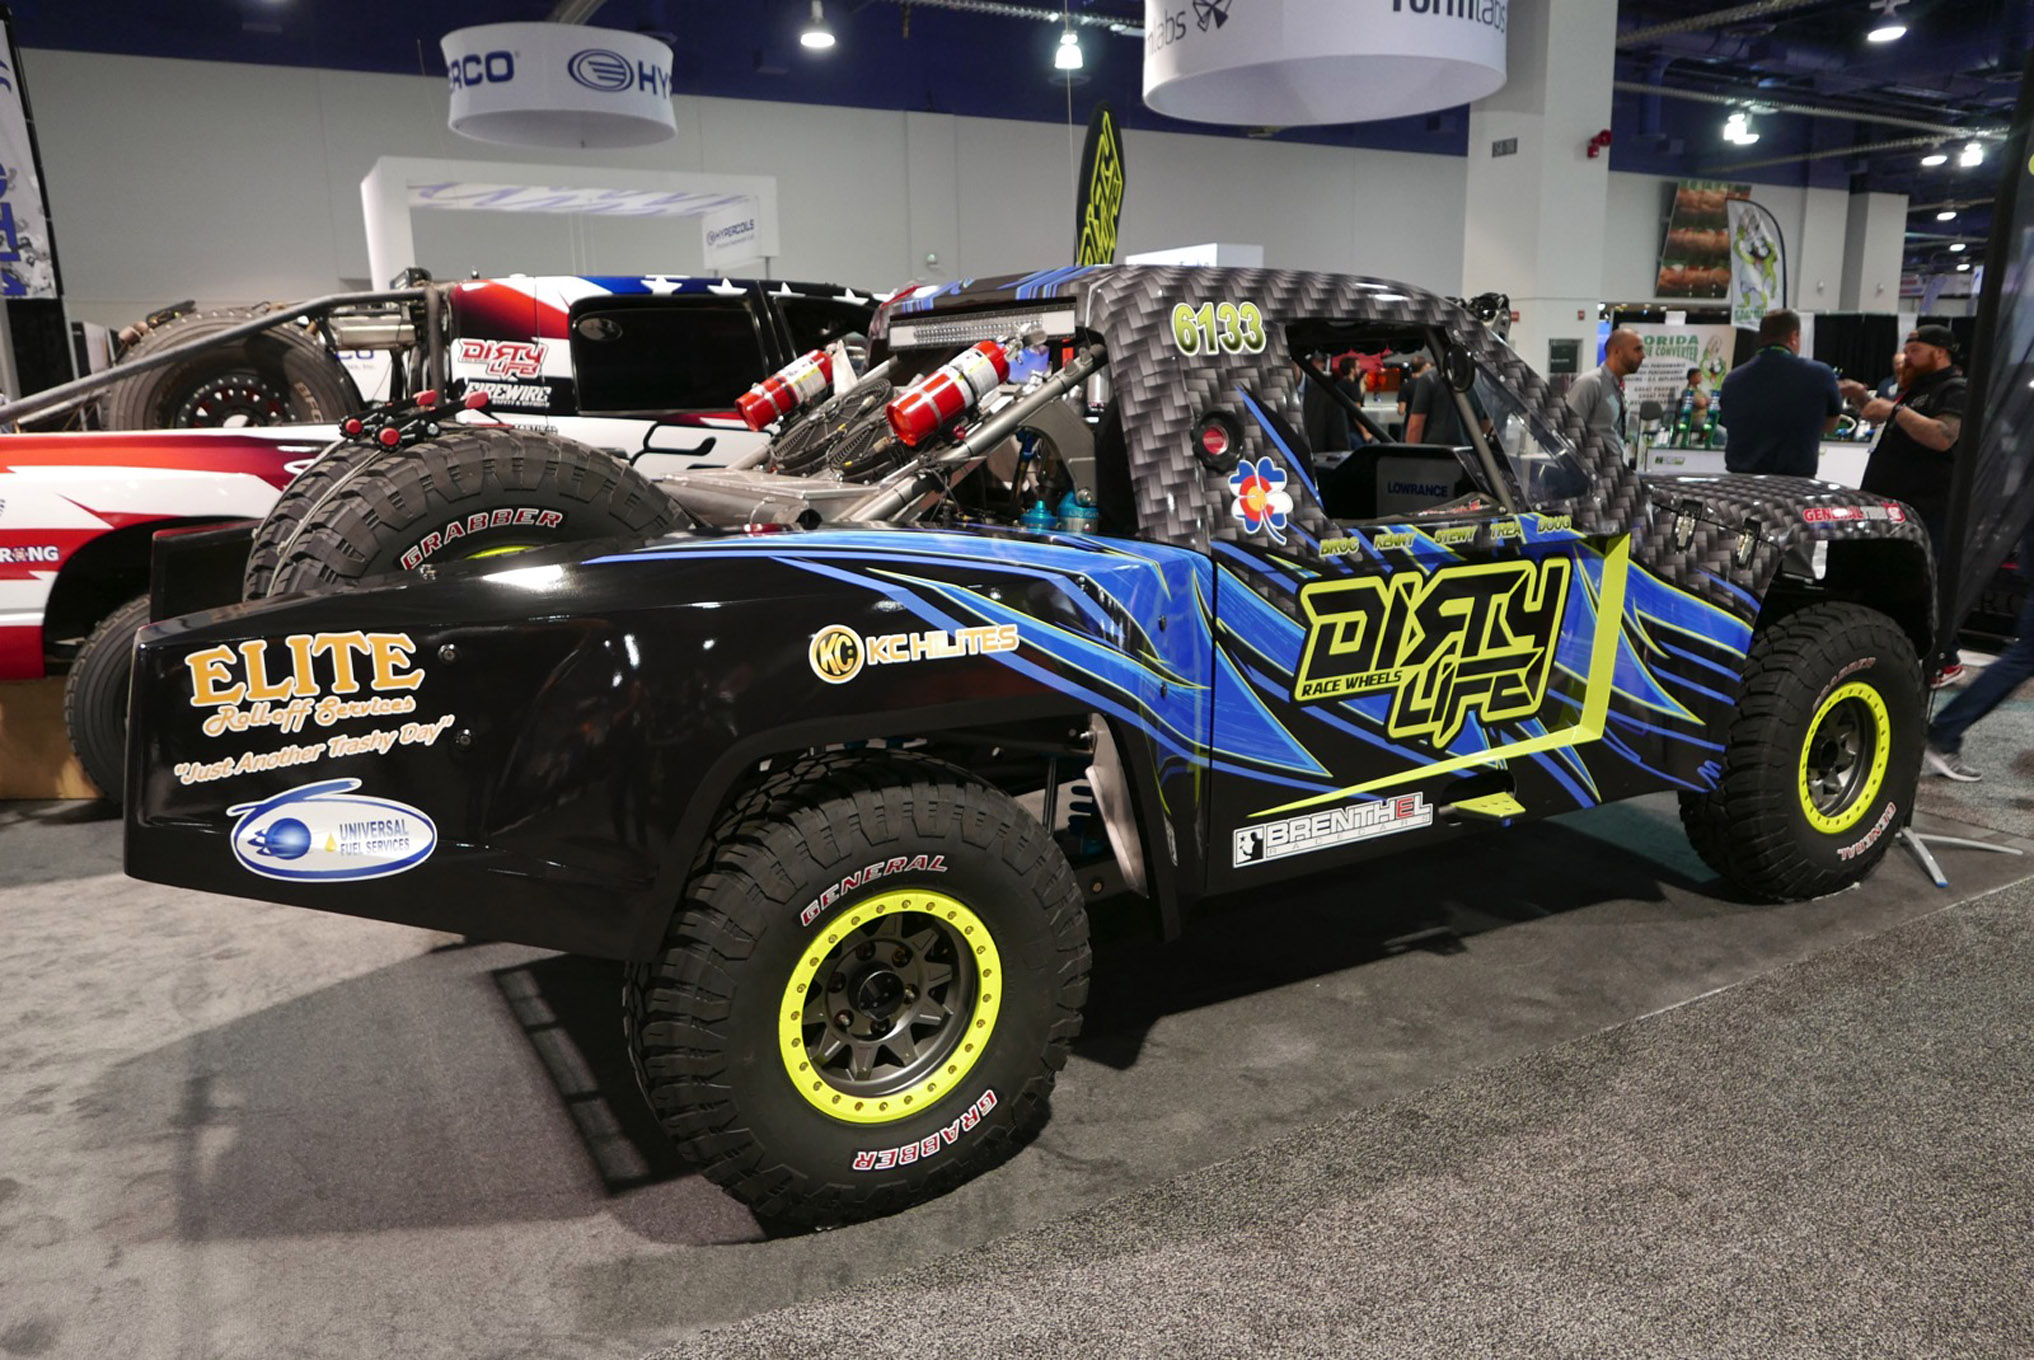 195 sema 2017 day 1 south upper hall gallery photos